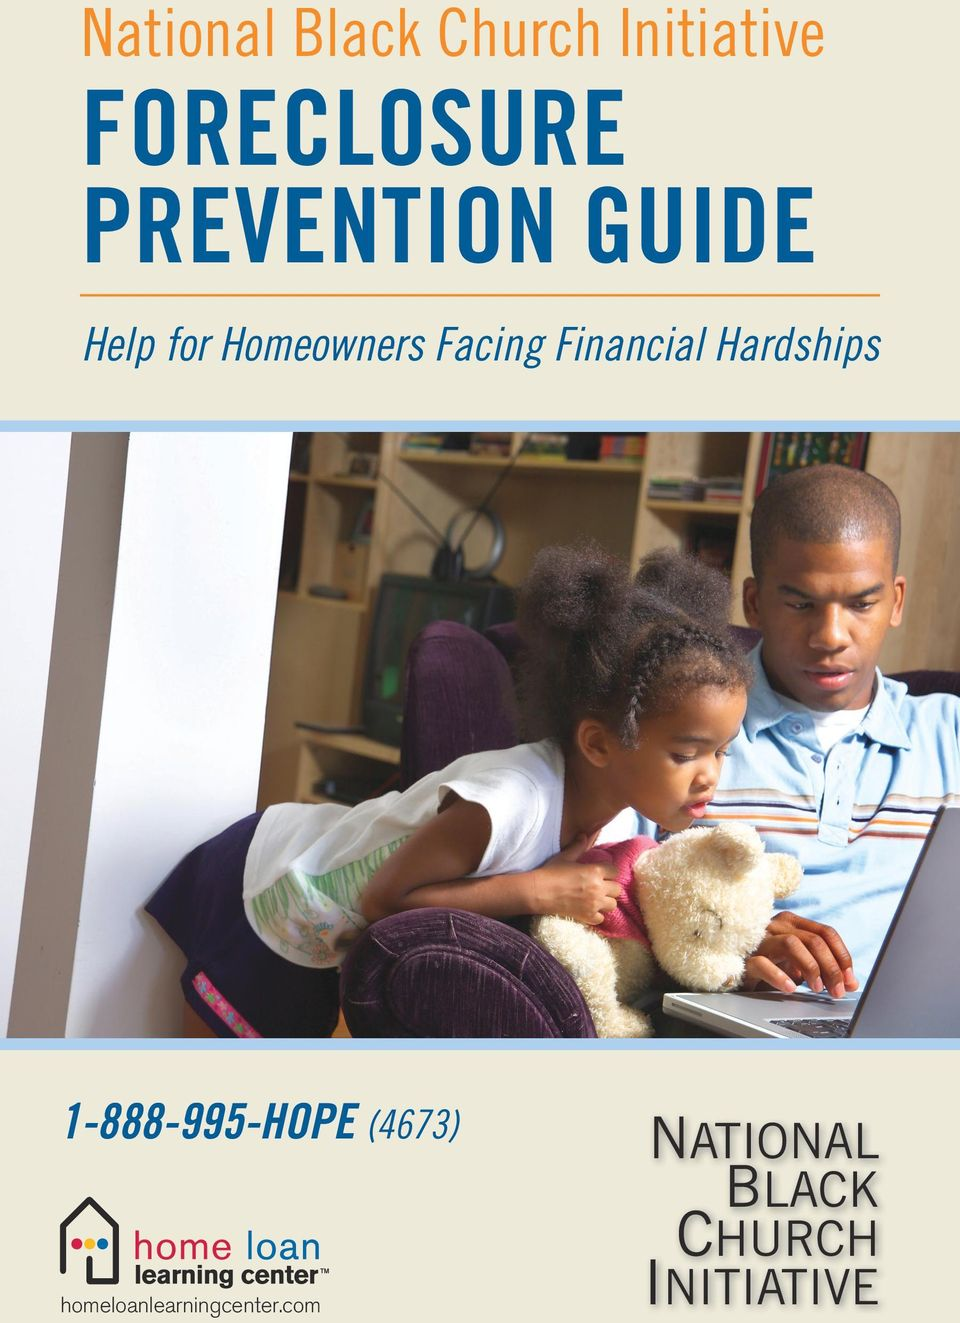 Homeowners Facing Financial Hardships 1-888-995-HOPE